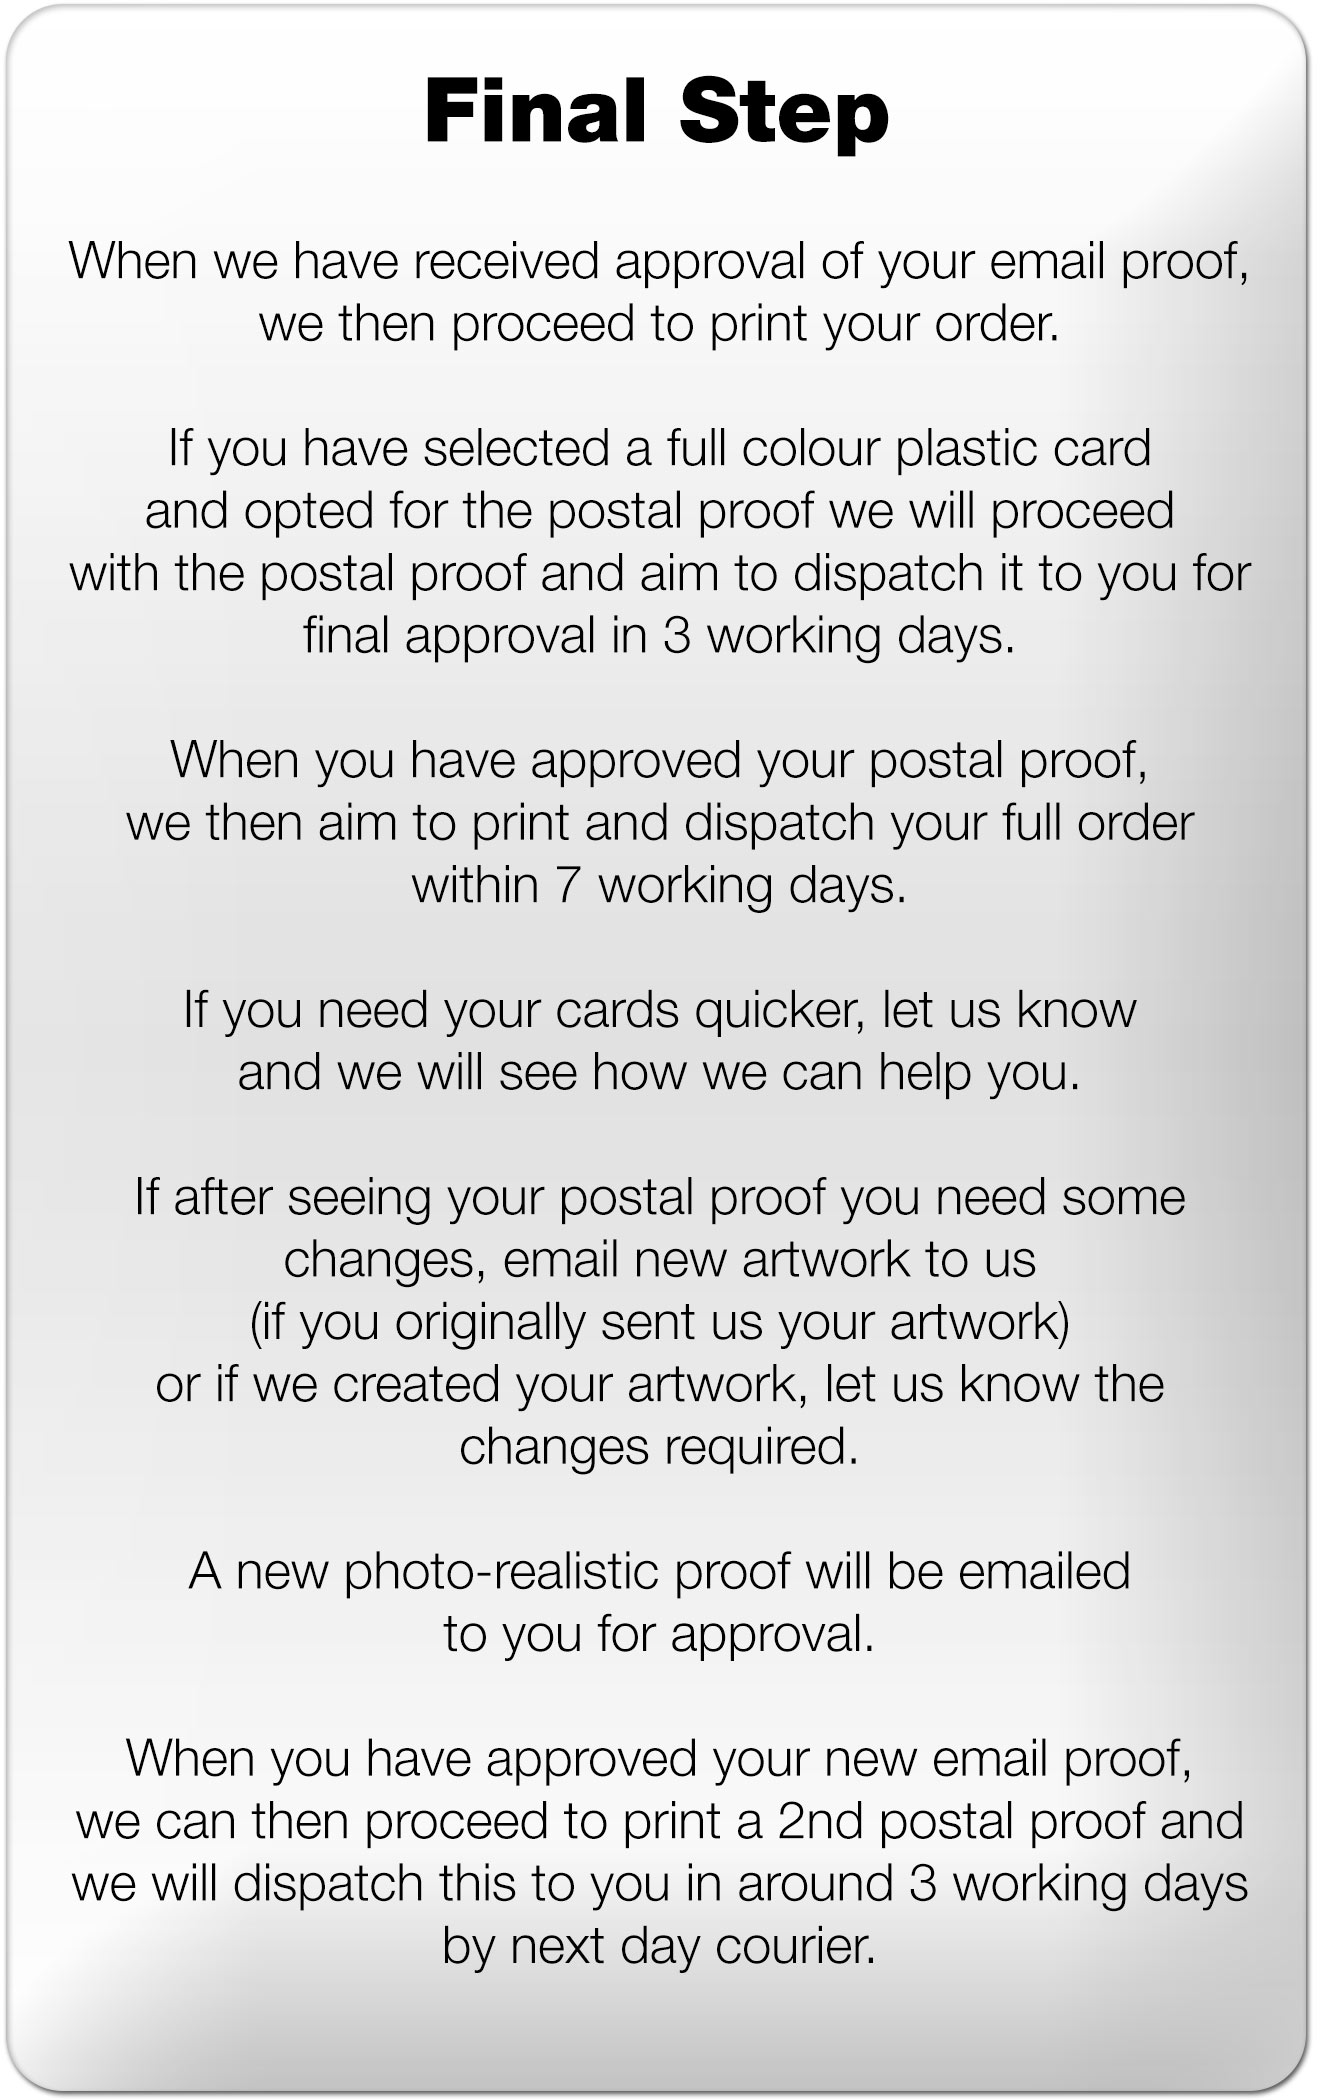 final step to order your plastic cards